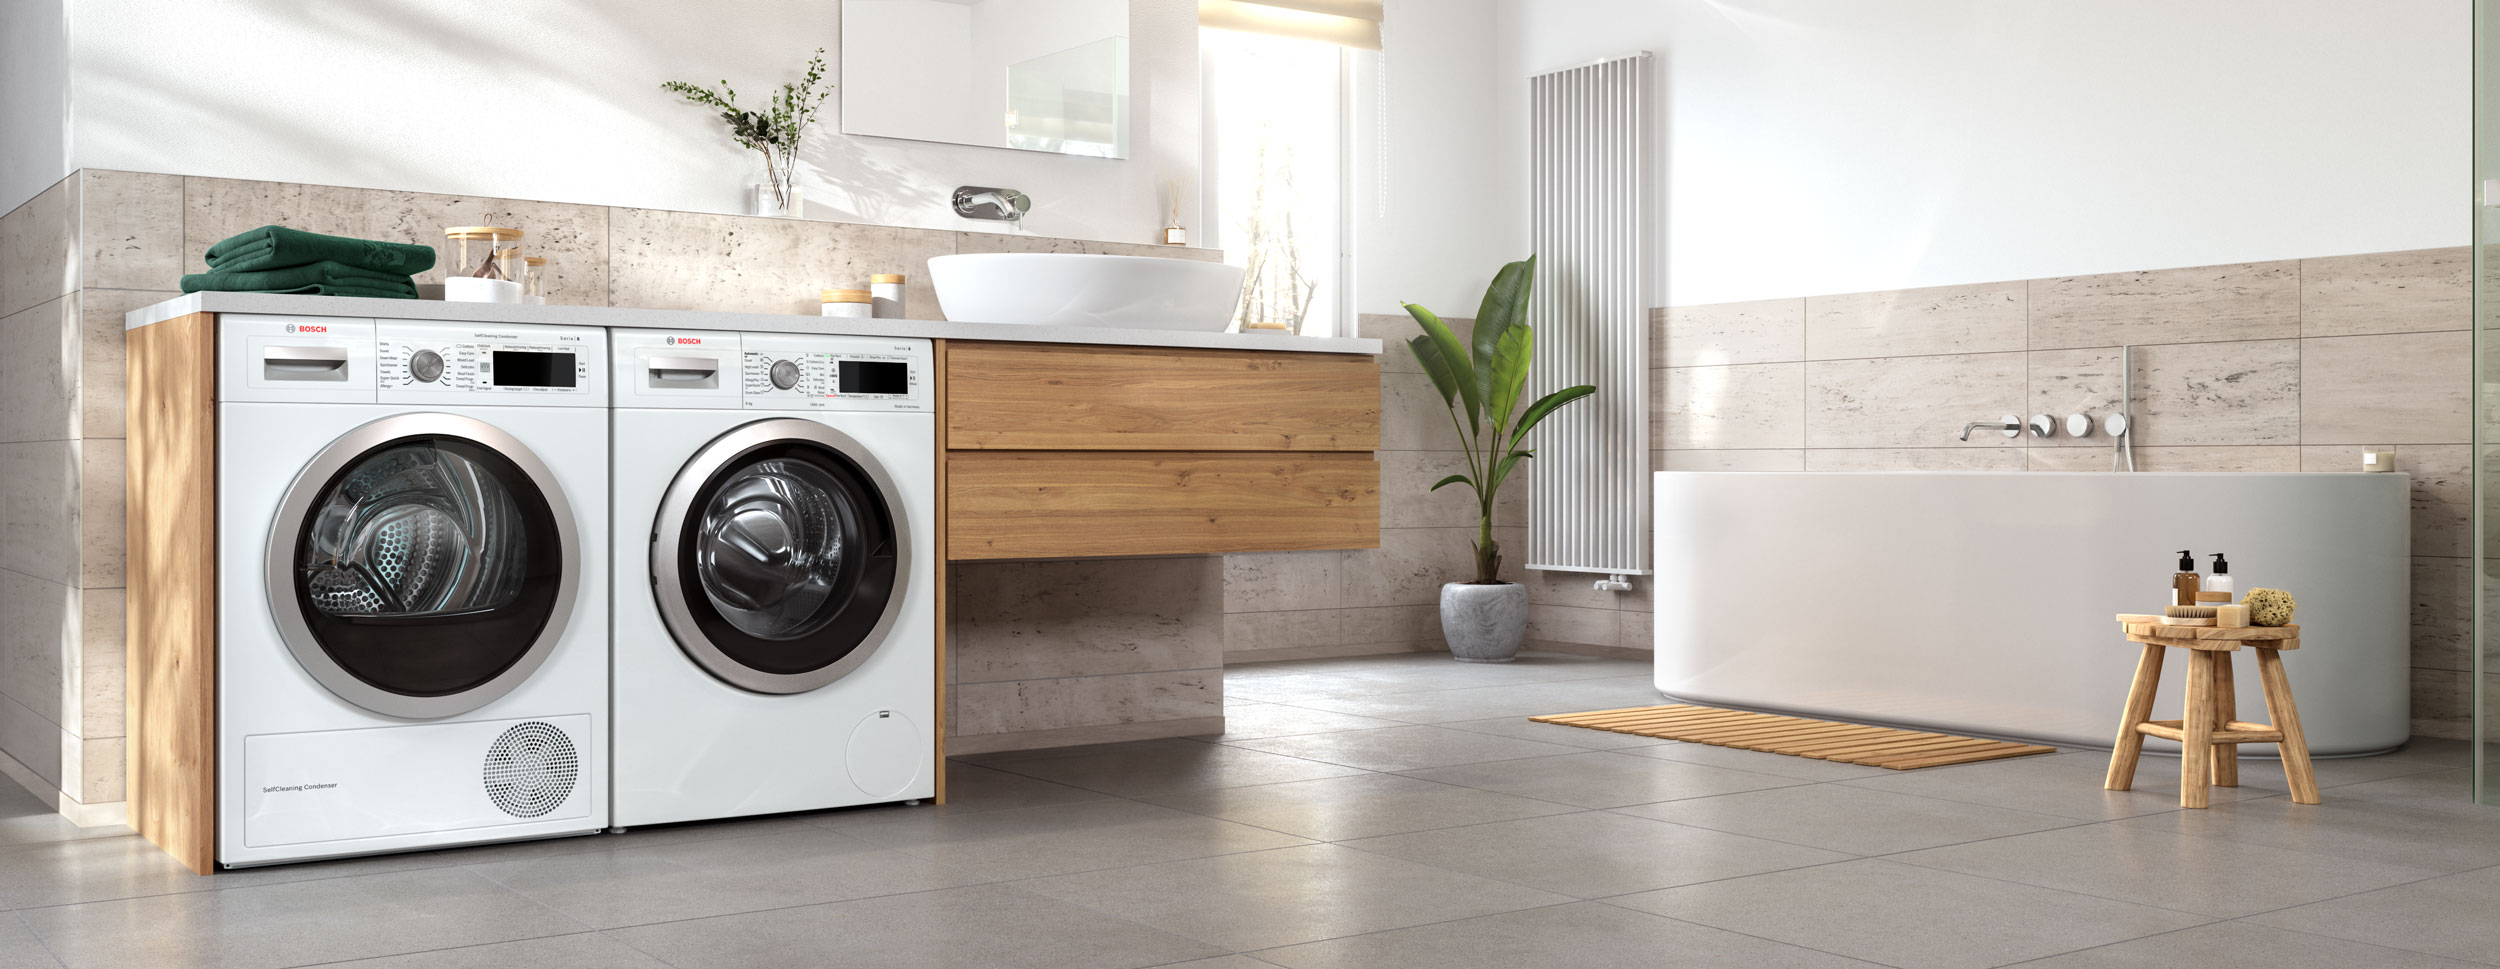 CGI - Bosch - Home Appliances - Washing machine - Dryer